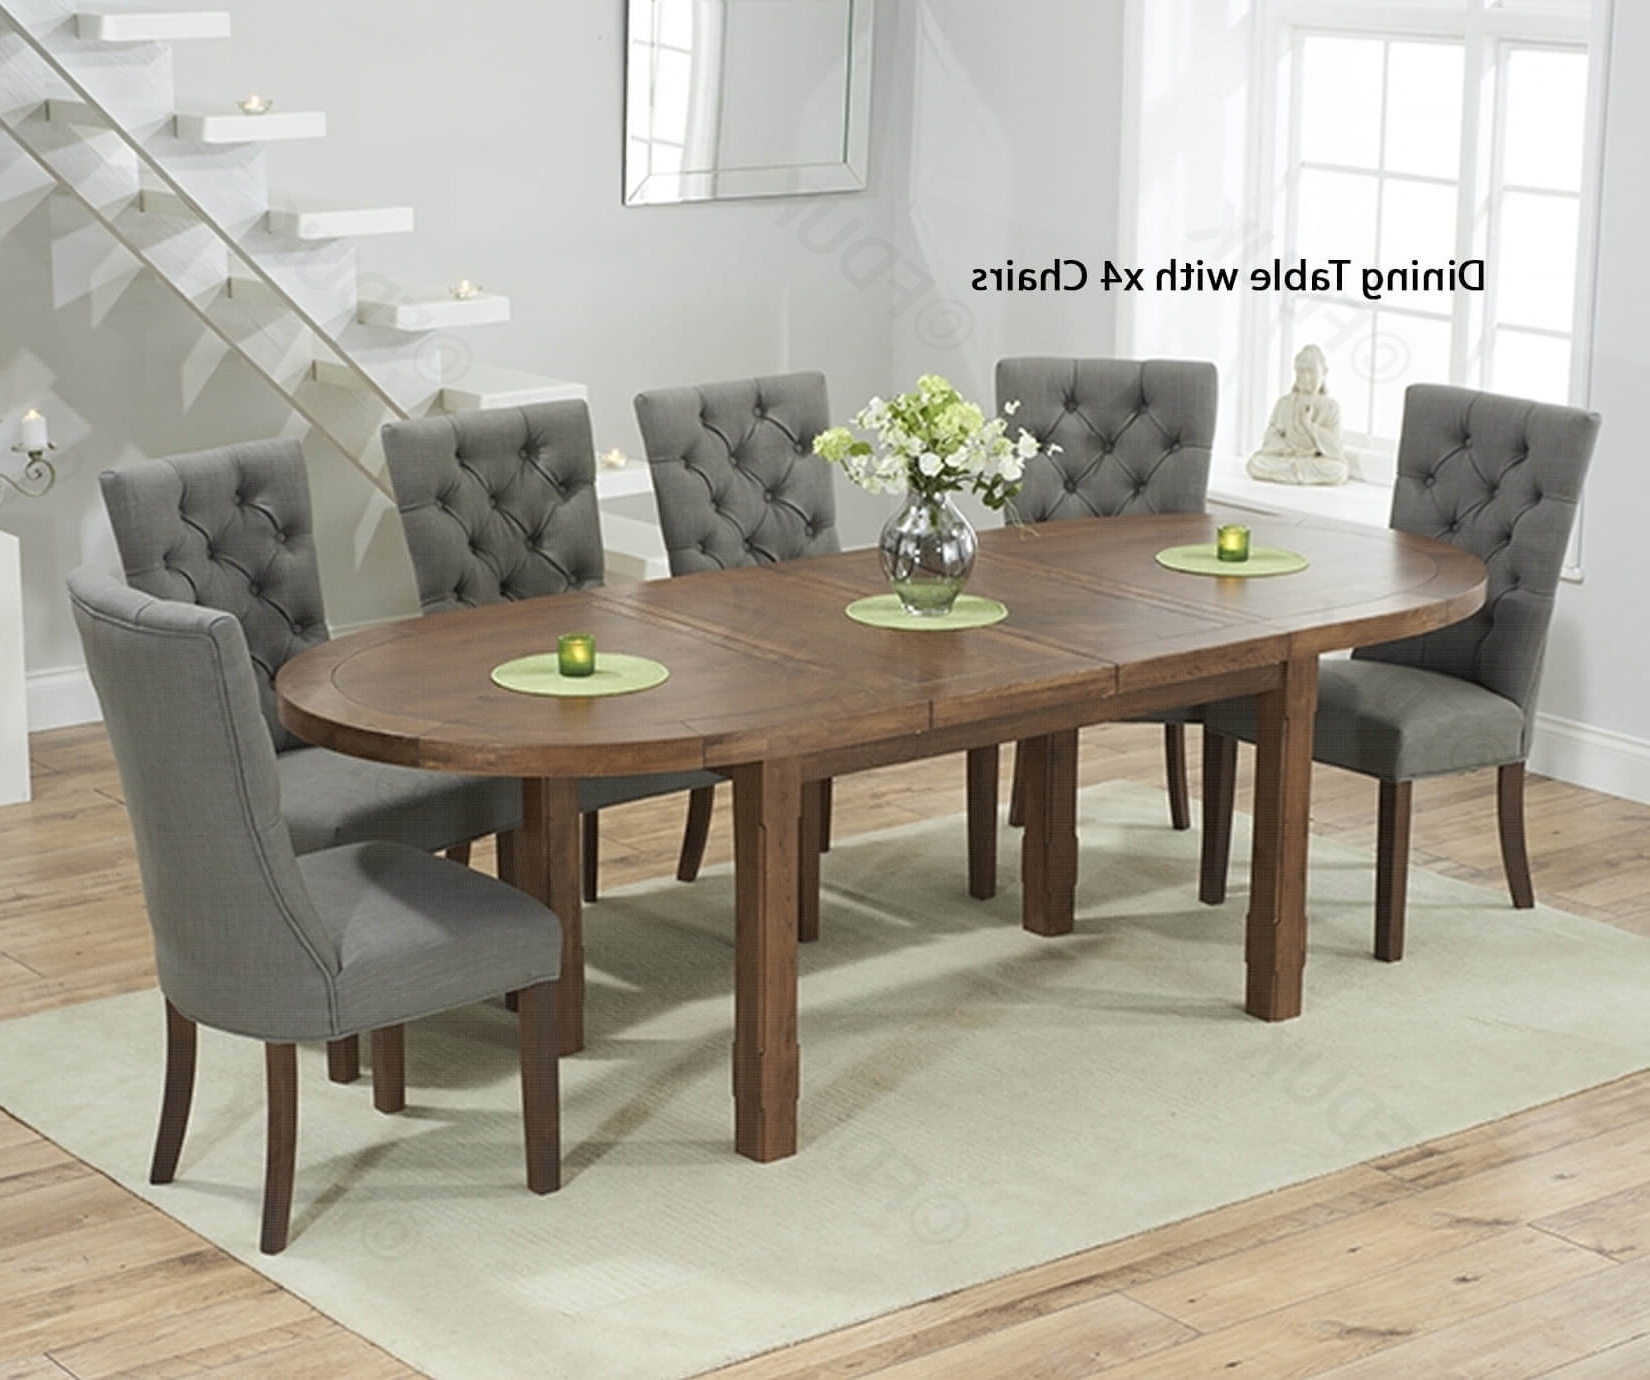 2018 Mark Harris Cheyenne Solid Dark Oak Dining Set – Oval Extending With Intended For Oval Oak Dining Tables And Chairs (View 1 of 25)